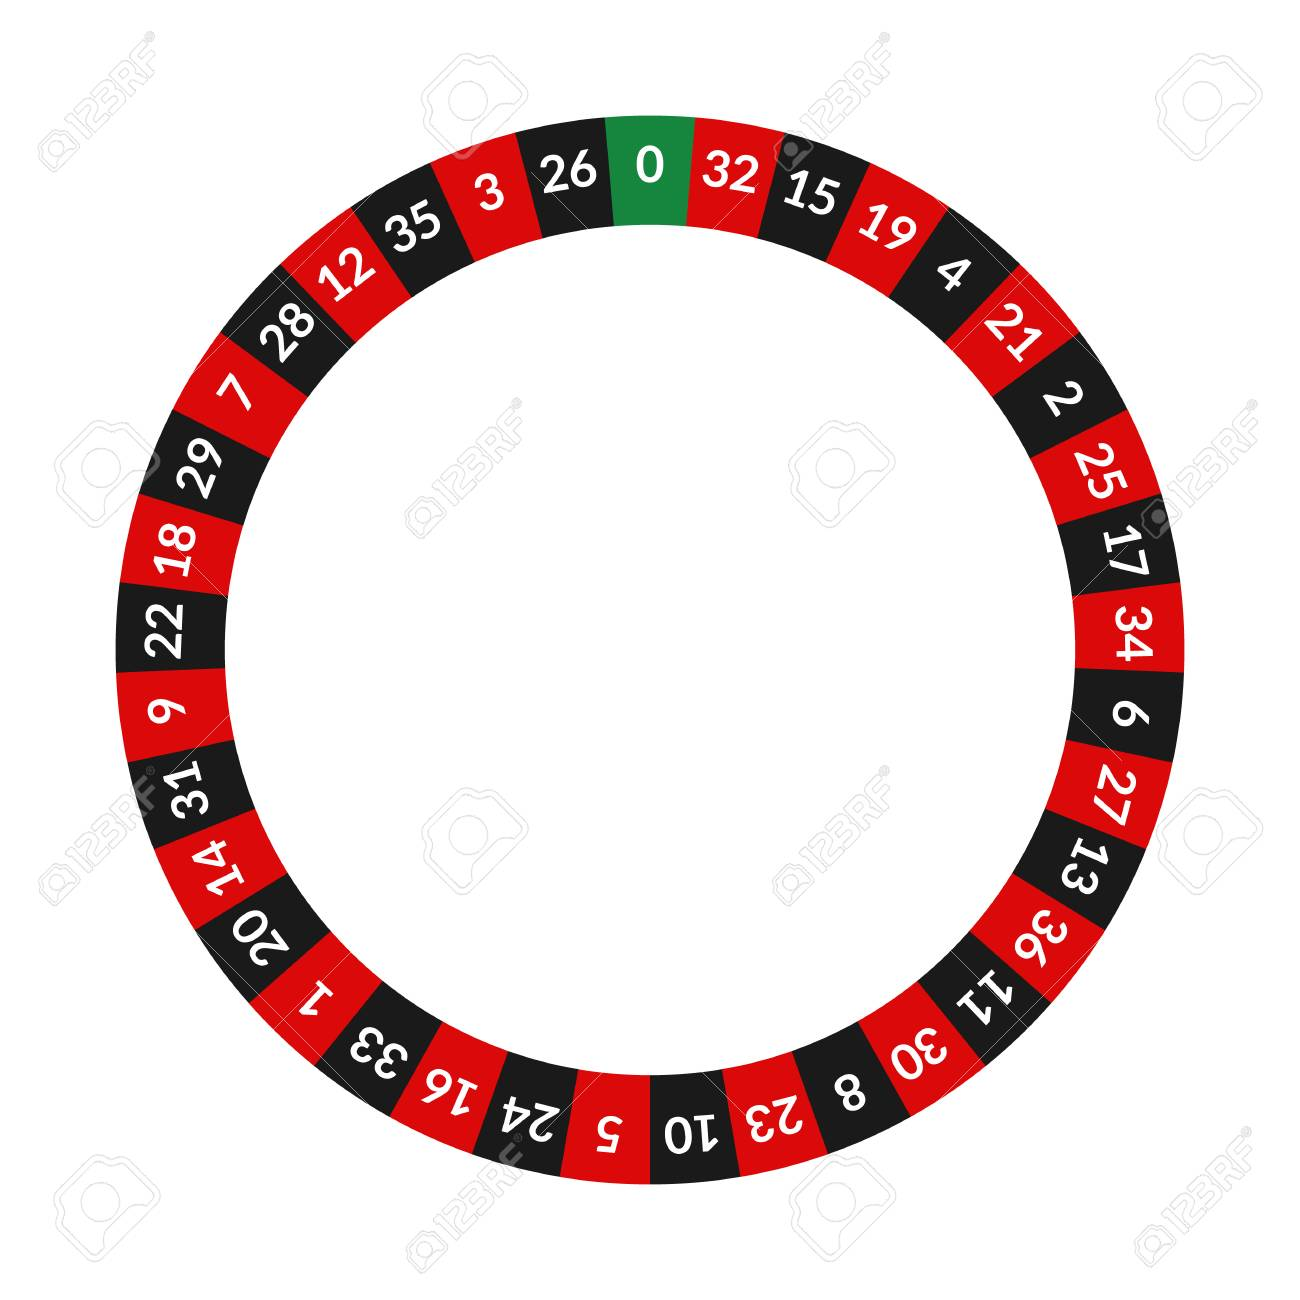 Realistic Detailed 3d Round Casino Roulette with Numbers. Vector - 122877071